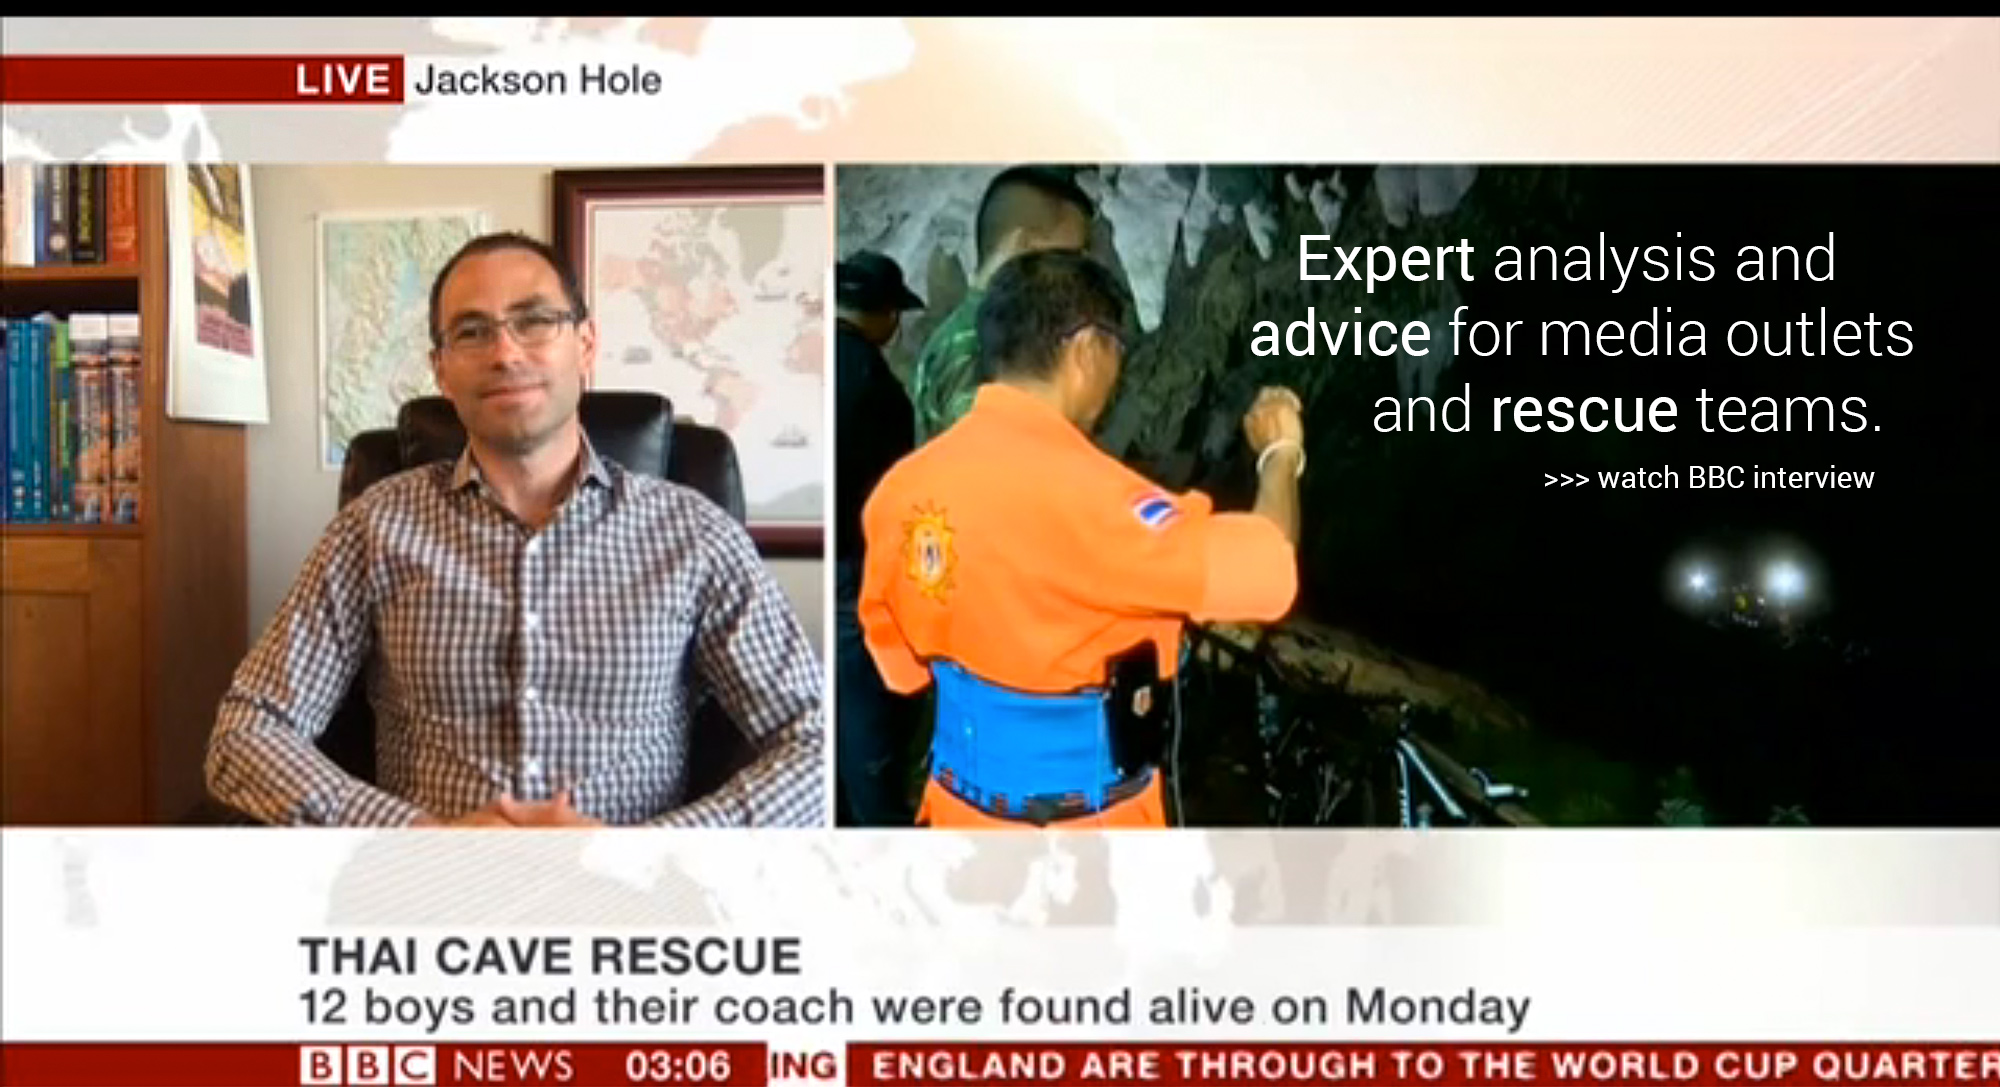 Expert analysis and advice for media outlets and rescue teams.